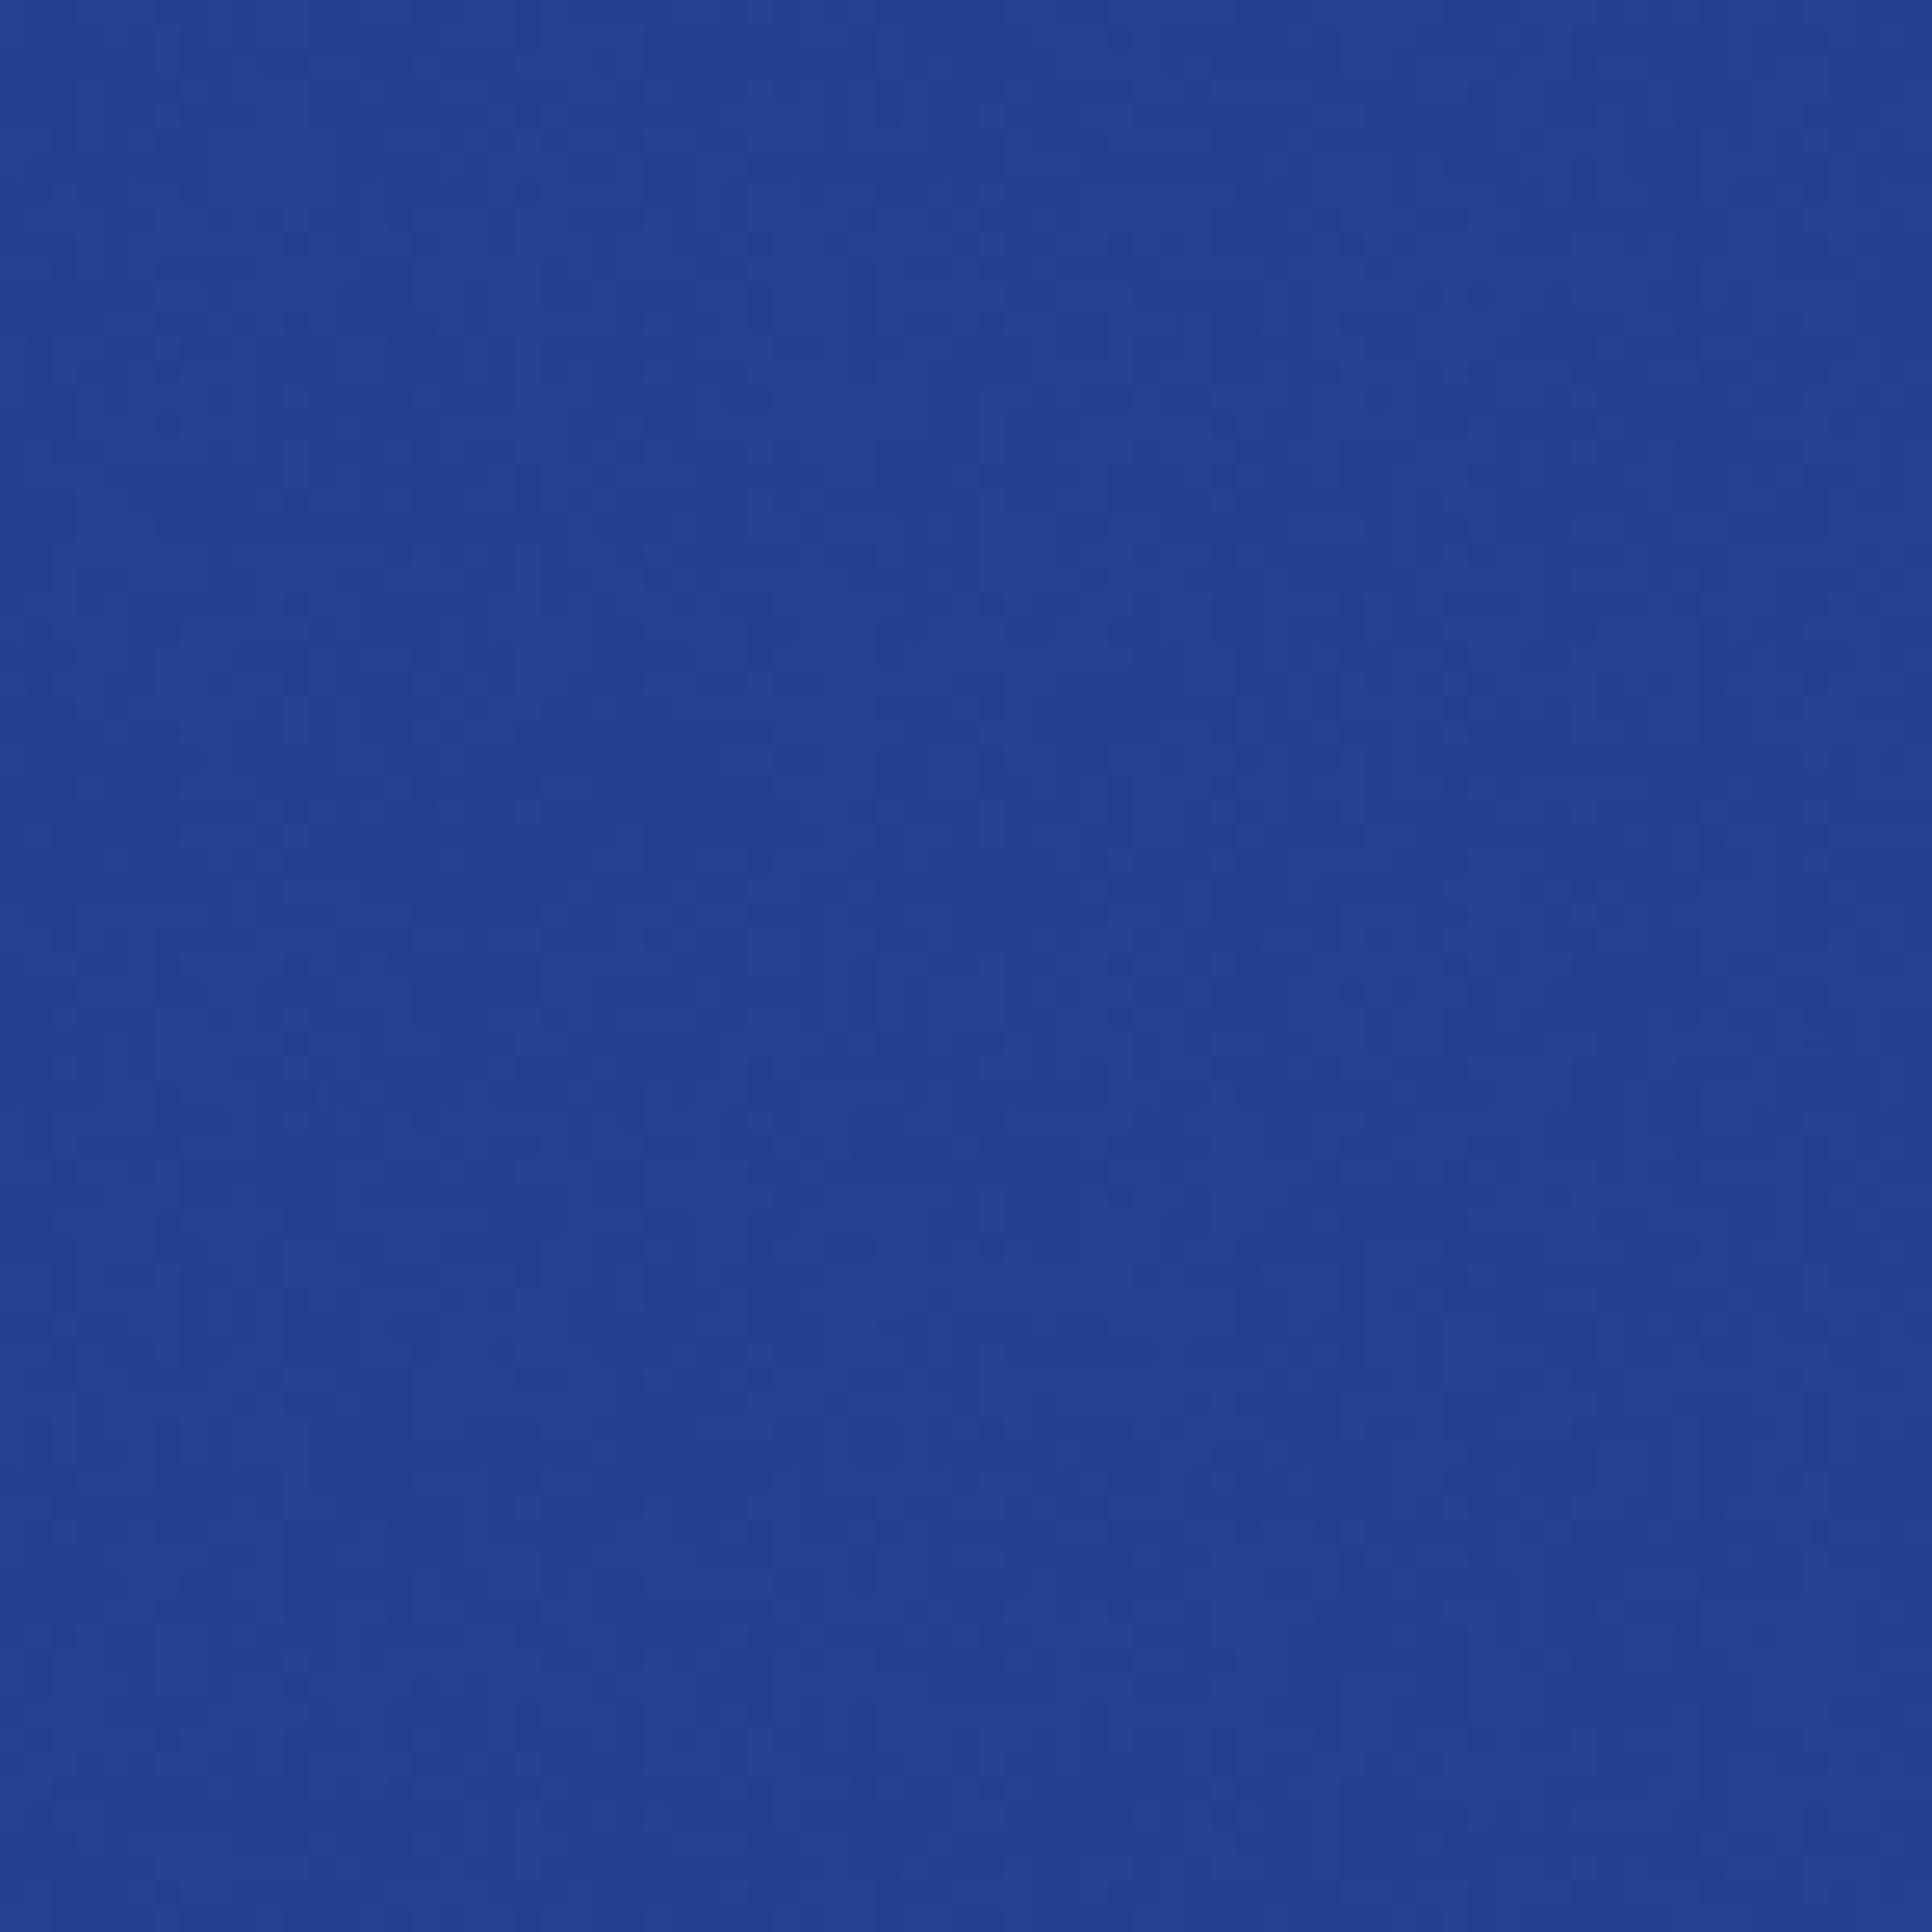 Con-Tact Brand Creative Covering, 09F-C9H13-12, Adhesive Vinyl Shelf Liner and Drawer Liner, Royal Blue, 18'' x 9'